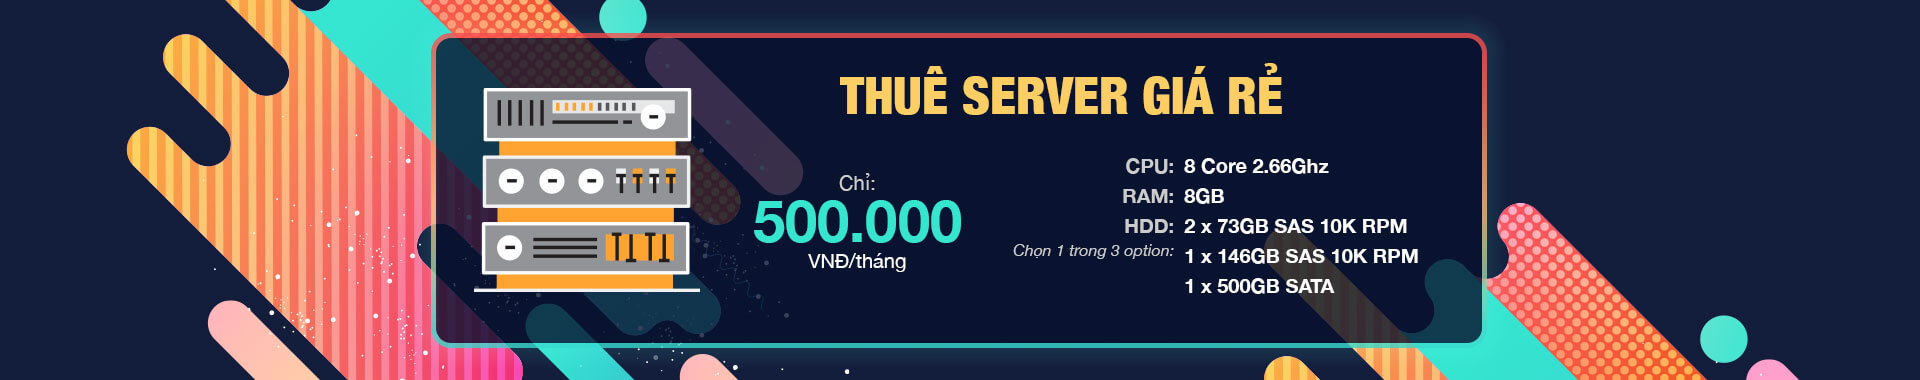 thue-server-gia-re-500-vhost-homepage